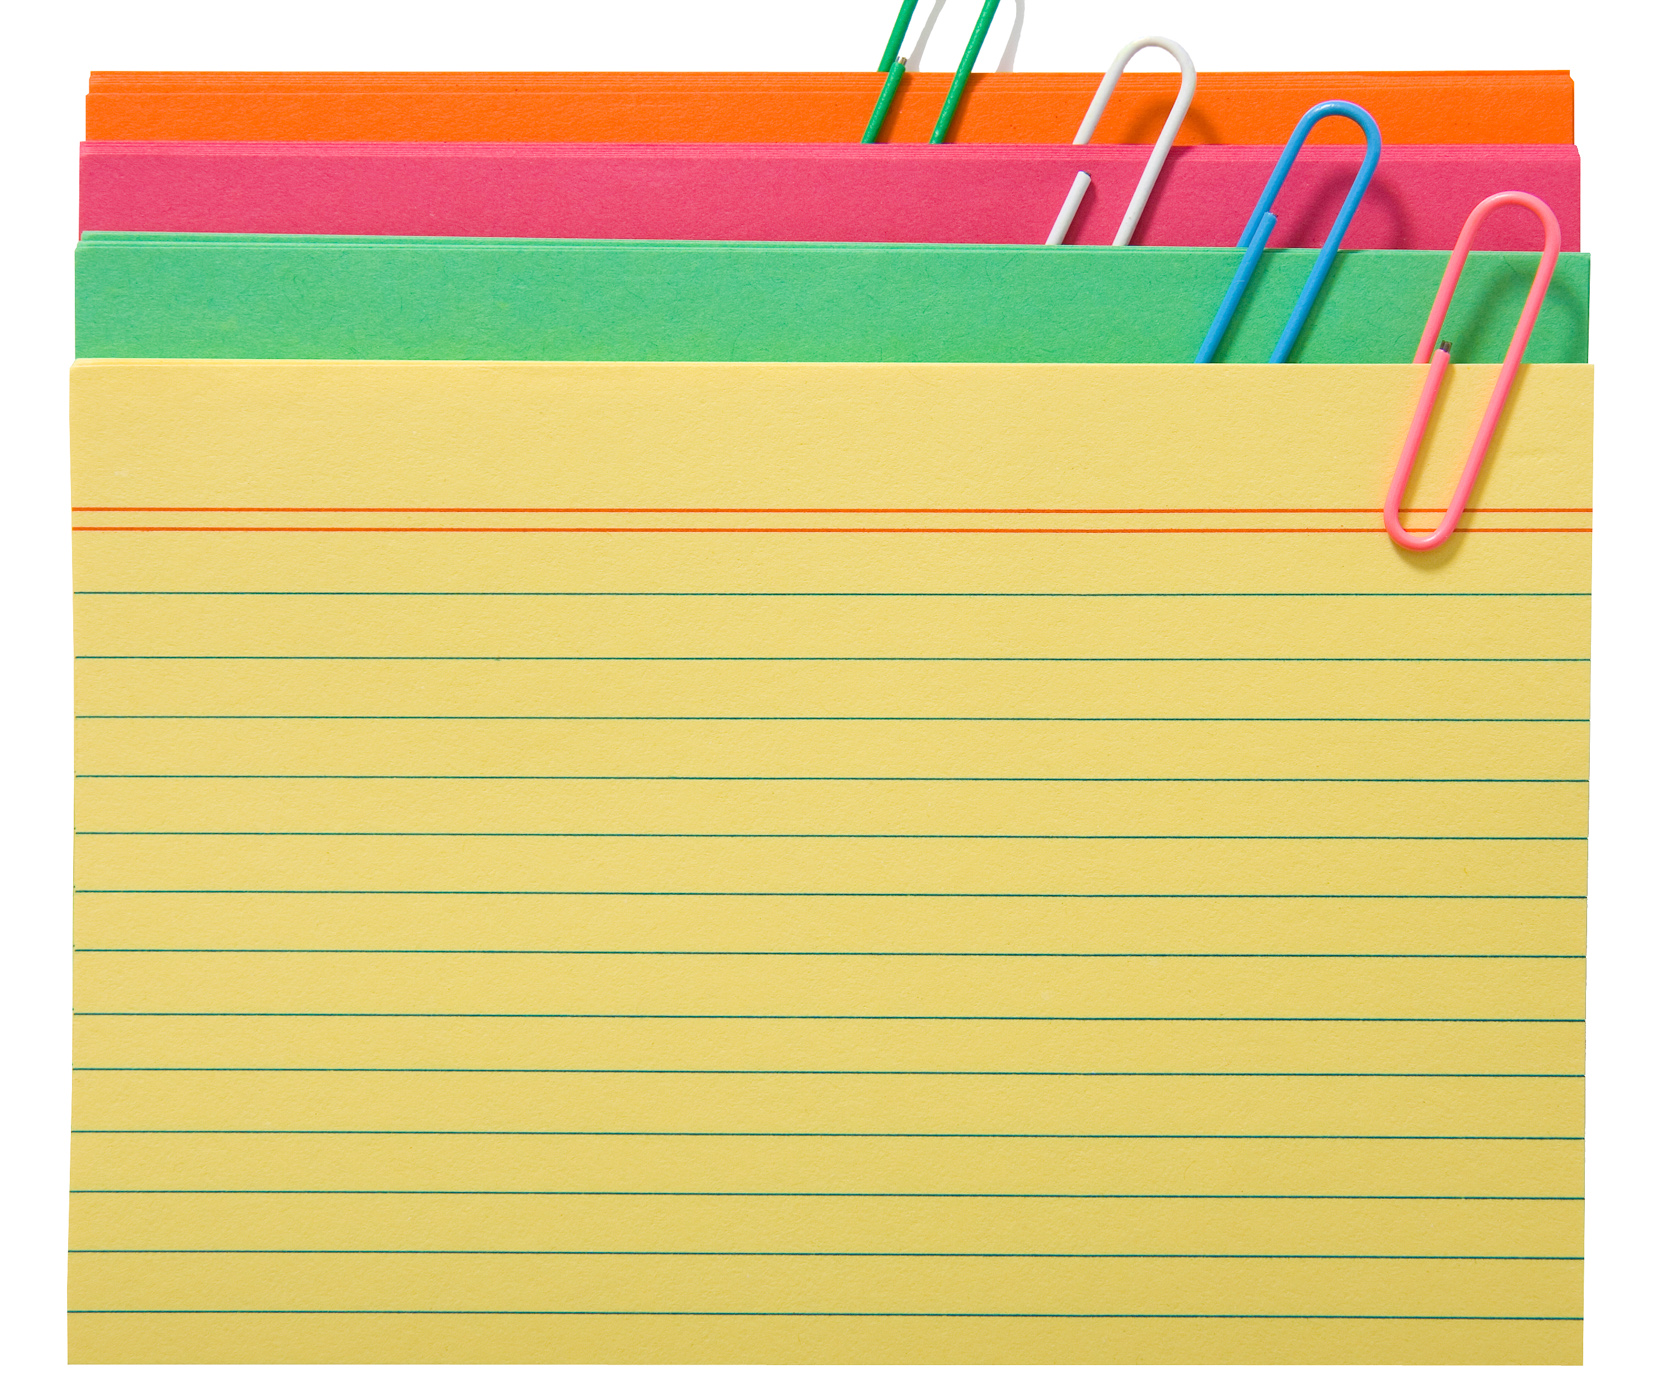 Blank Index Cards For Notes, Organizer, Pad, Organize, Notecard, HQ Photo